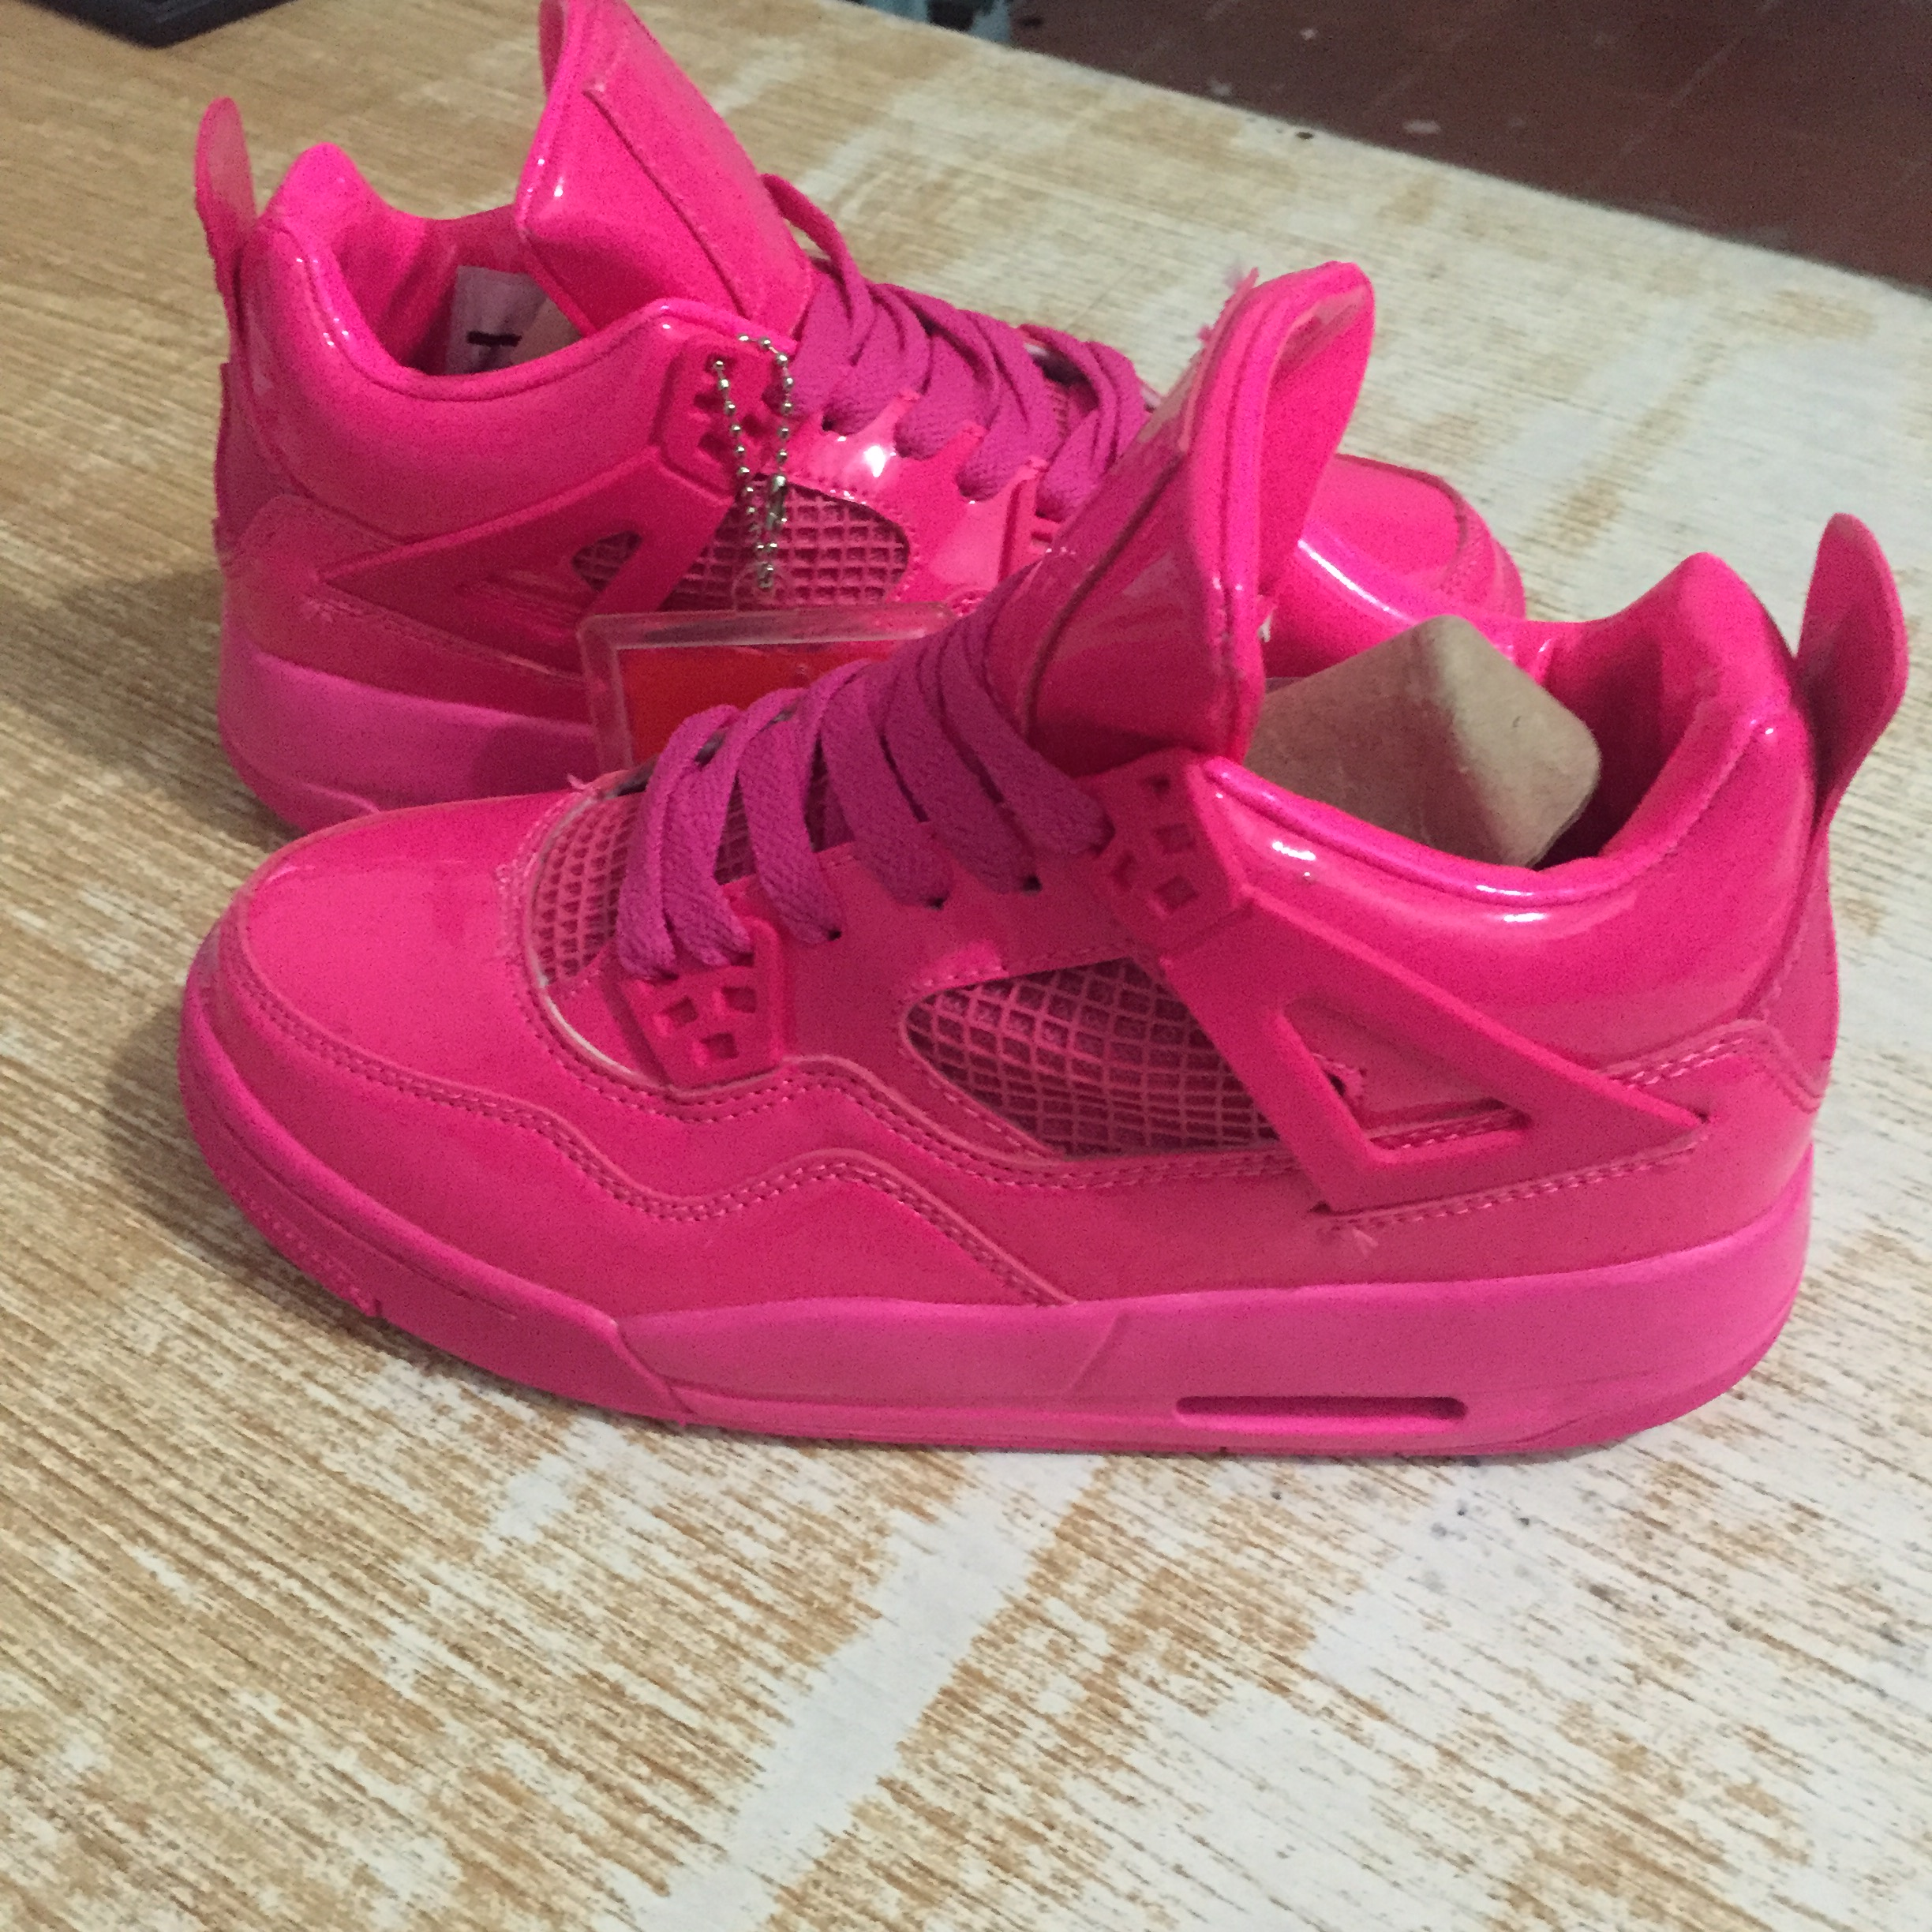 Air Jordan 4 All Red Valentine's Day Shoes